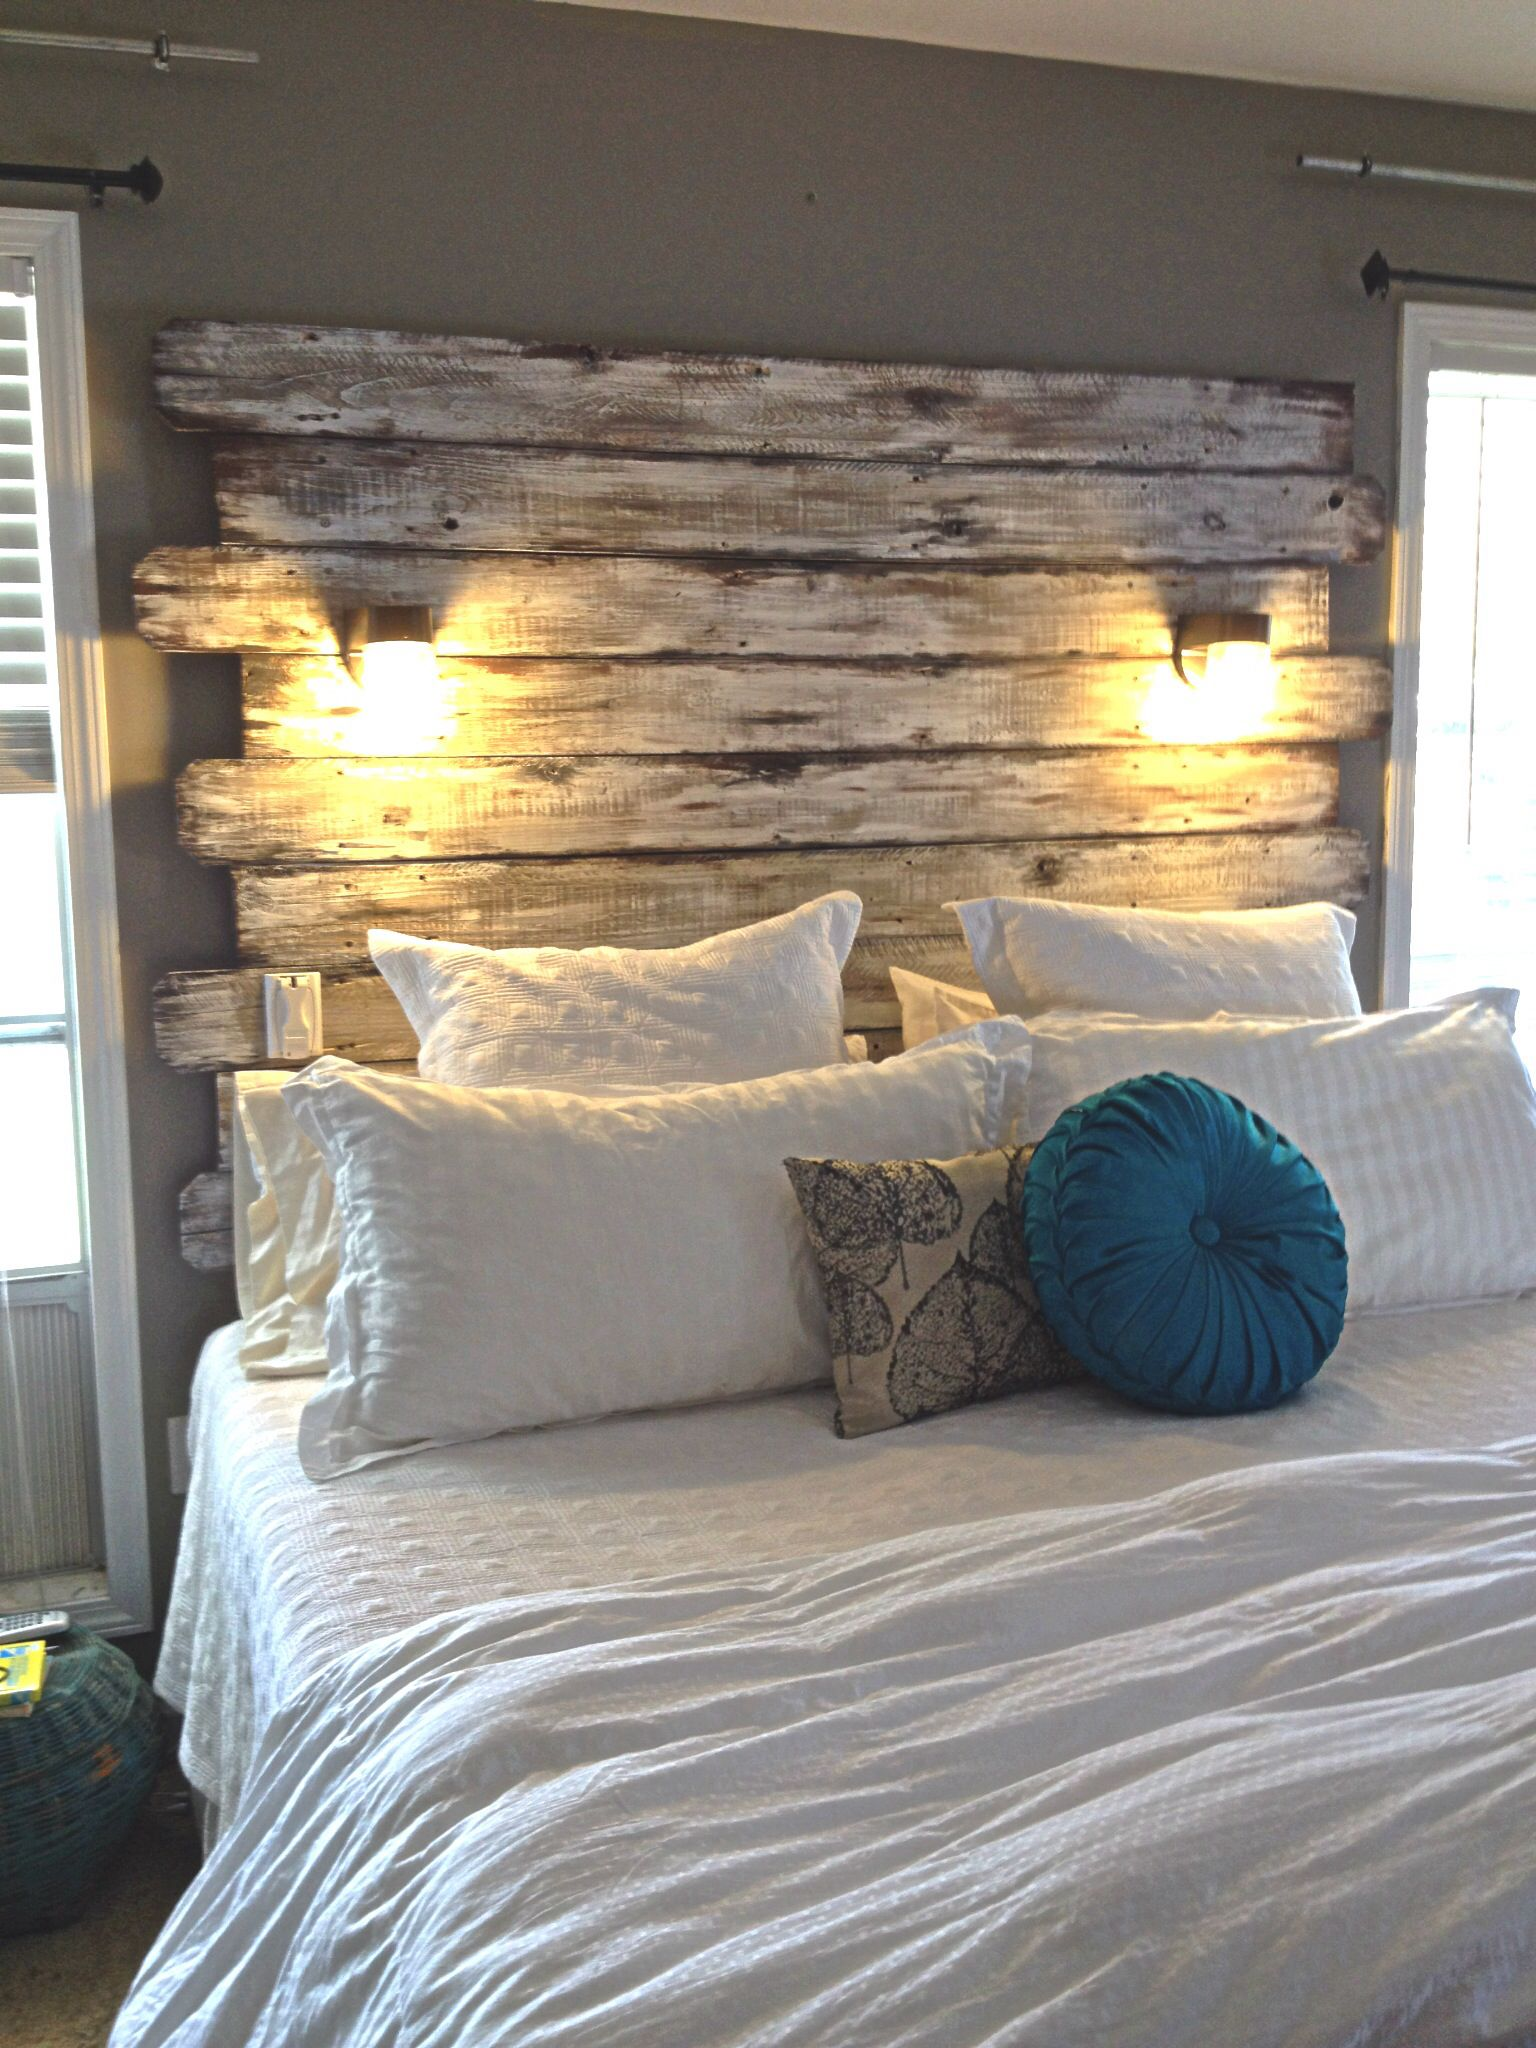 11 Ways In Which You Can Style Up Your Bedroom For Free in 2018      GuestRooms Better pic of headboard out of old fencing  Hubby added lights   Total 20  plus tax  Distressed it with acrylic kids paint  Lol